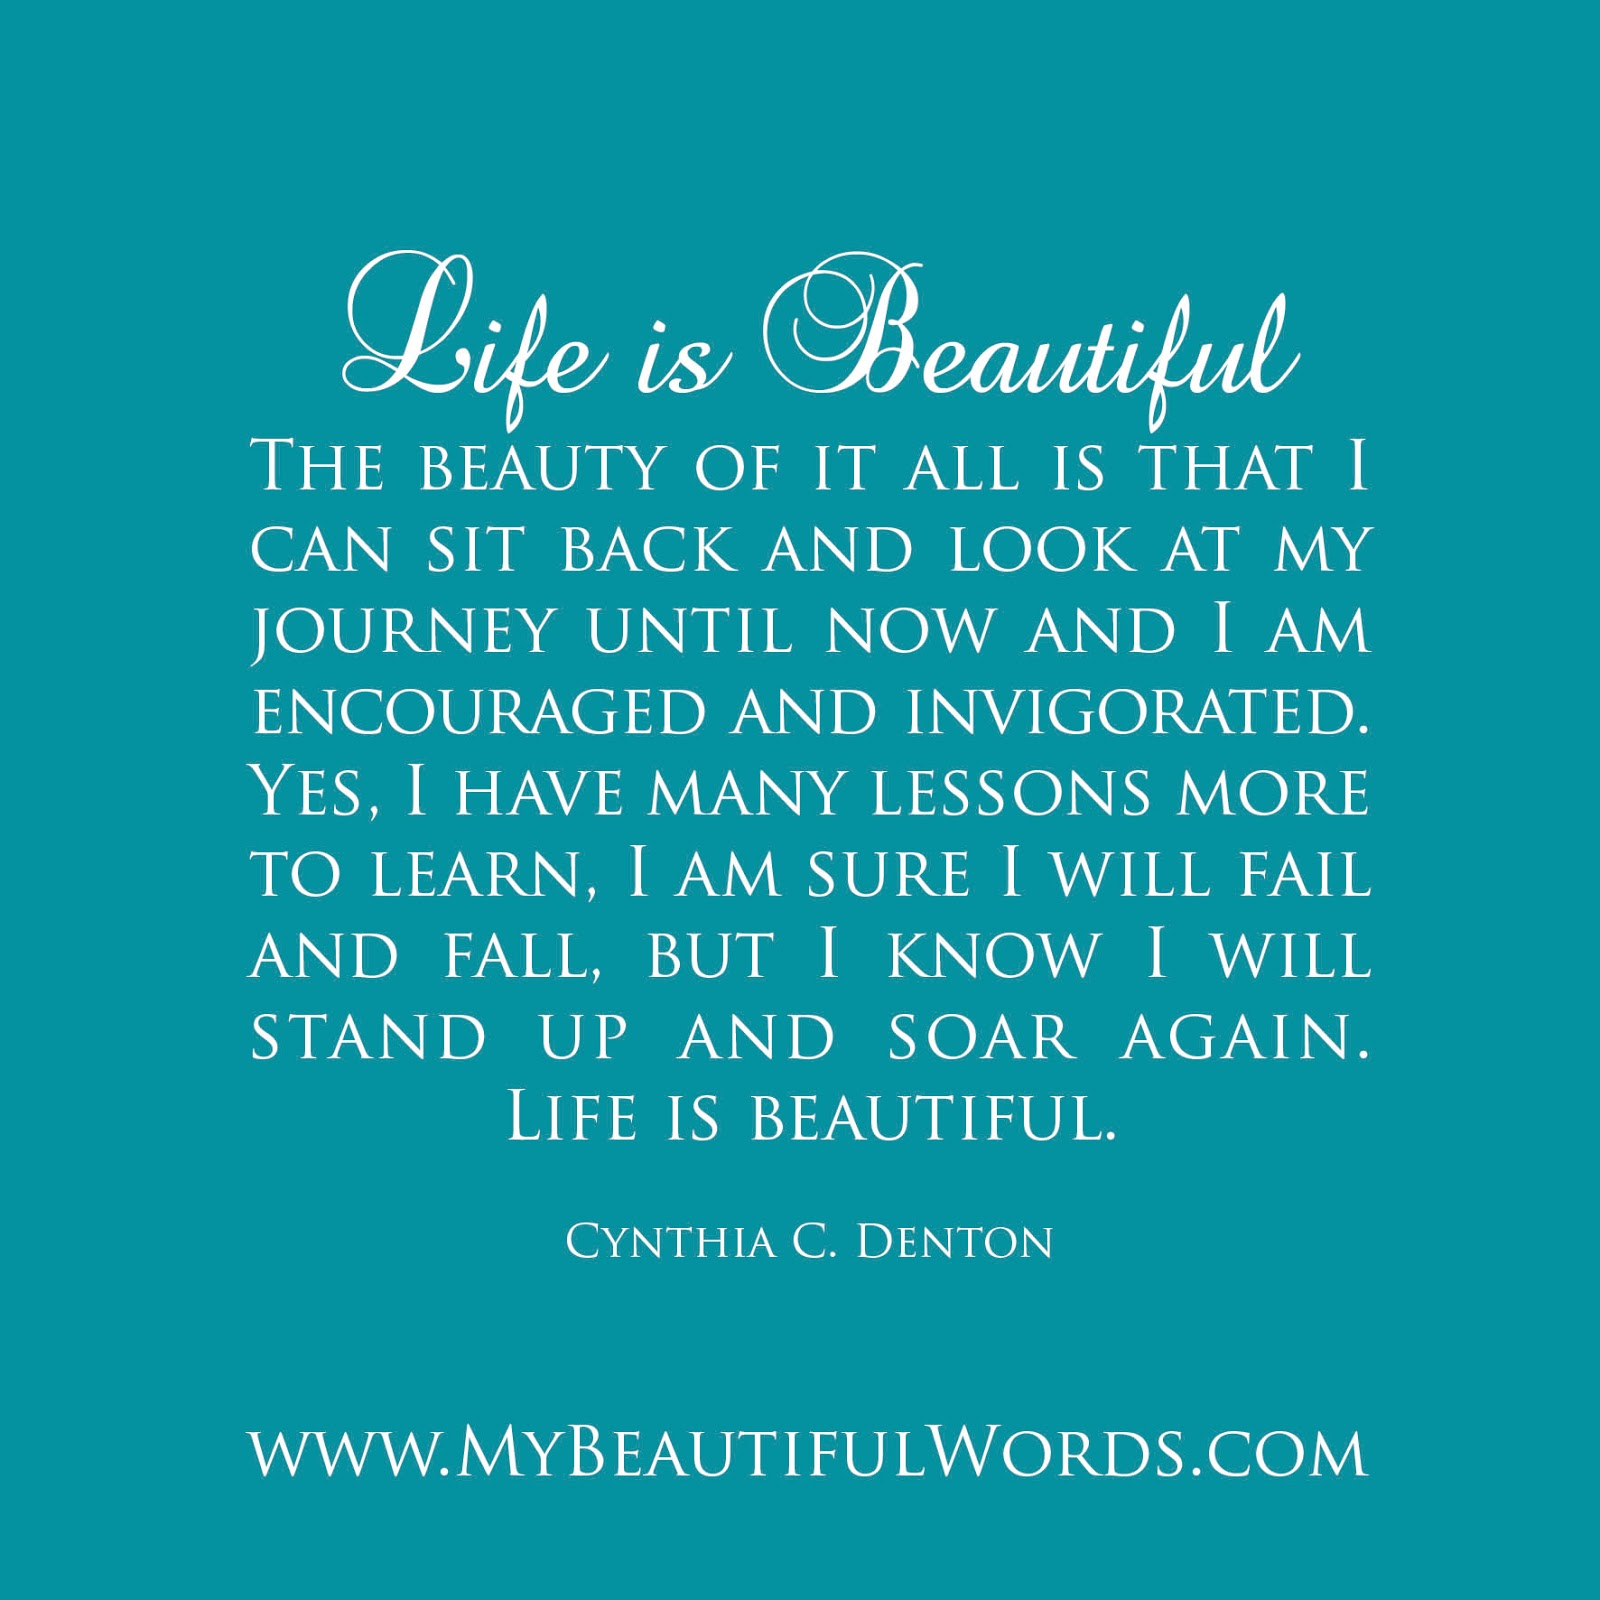 Beautiful Life Quotes Life Quotes: My Life Is Beautiful Quotes. QuotesGram